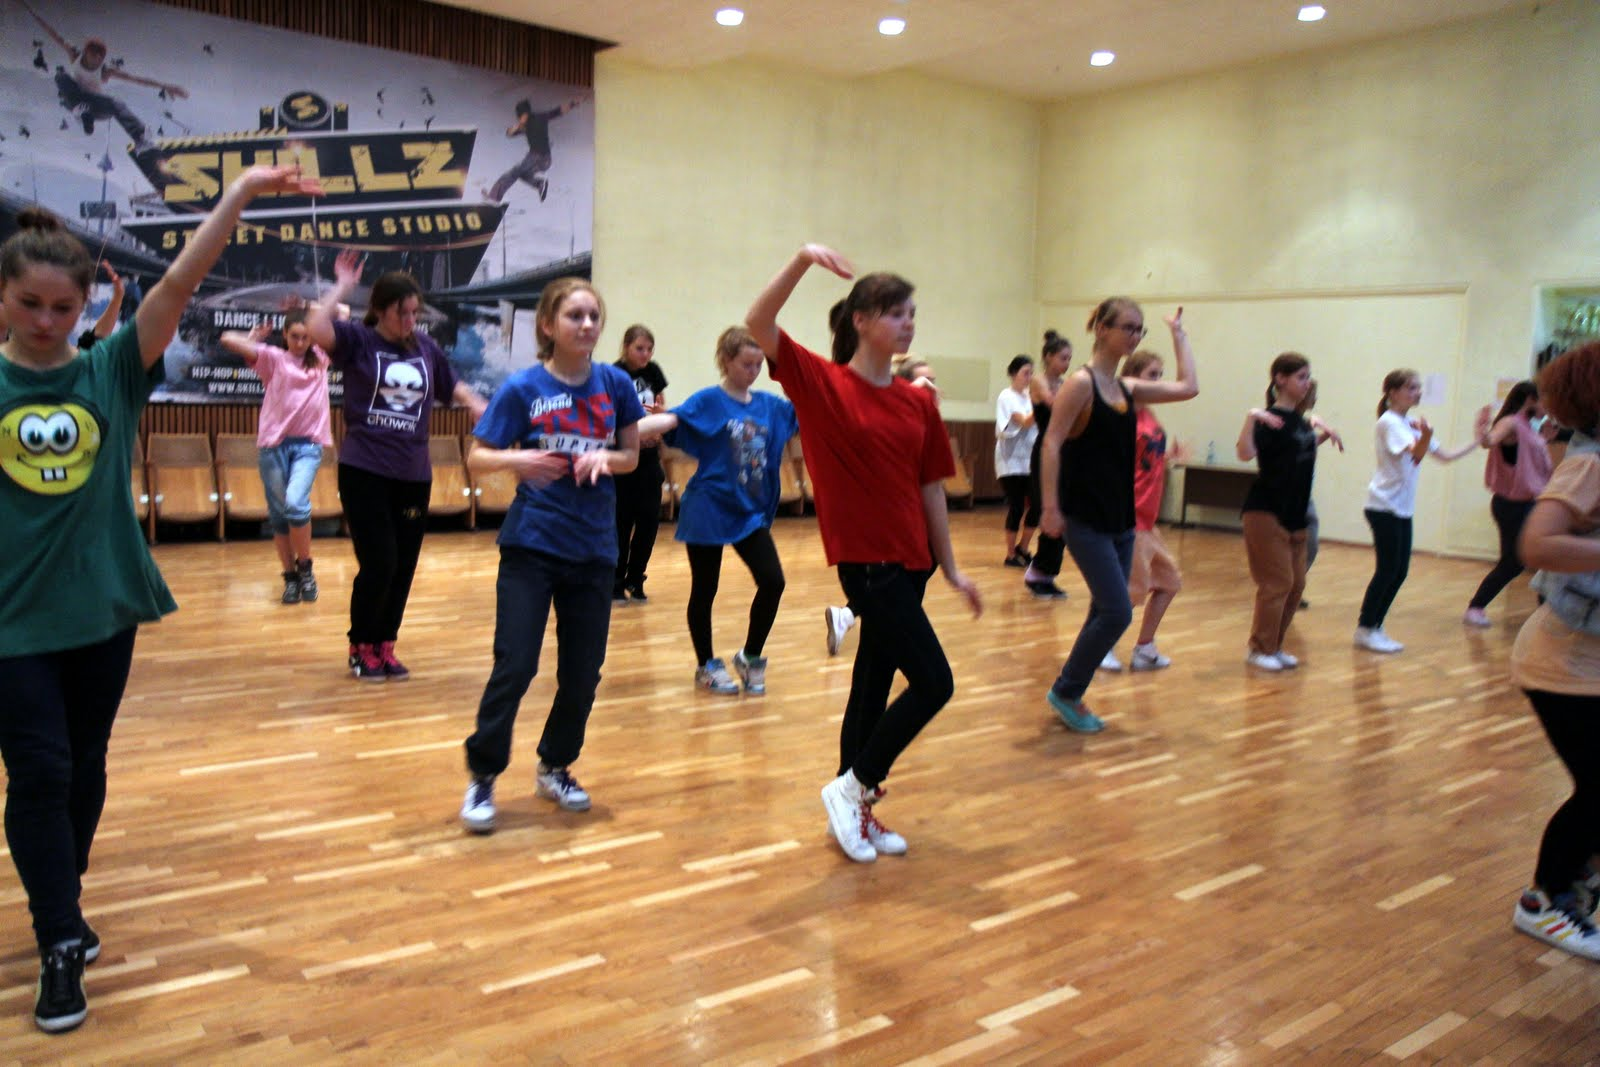 Waacking workshop with Nastya (LV) - IMG_2064.JPG